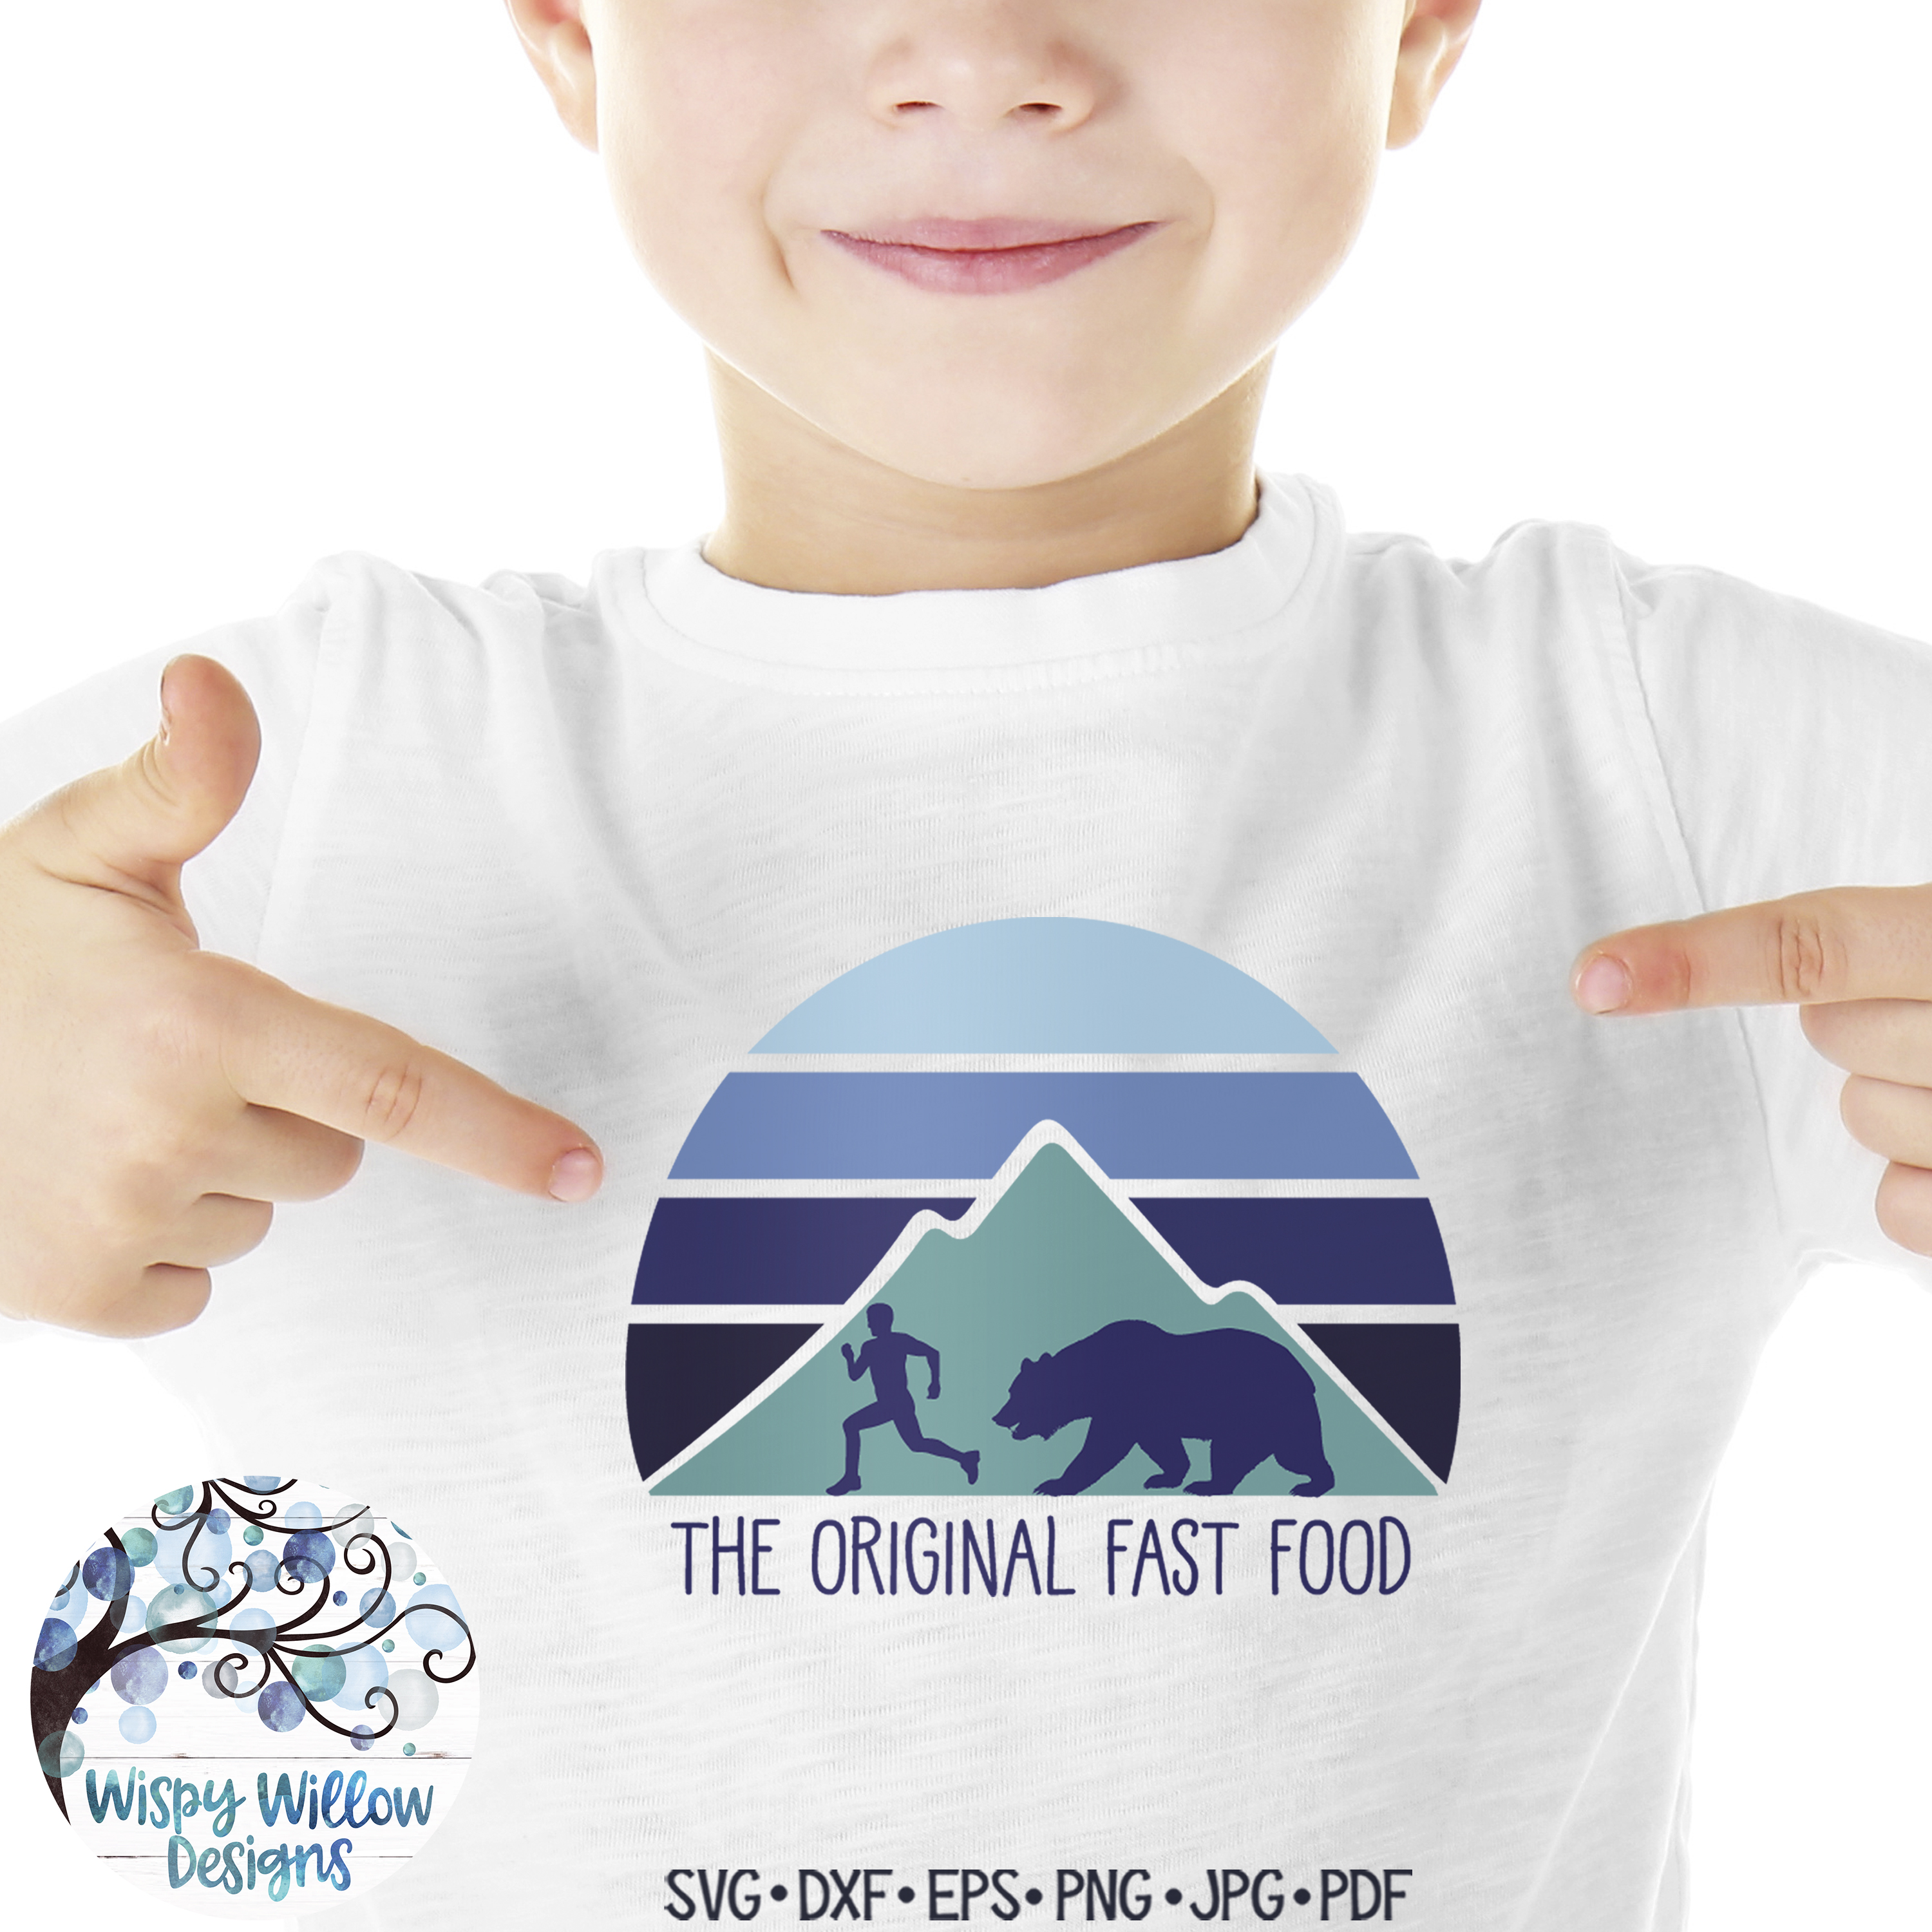 The Original Fast Food SVG   Funny Camping SVG Cut File example image 3